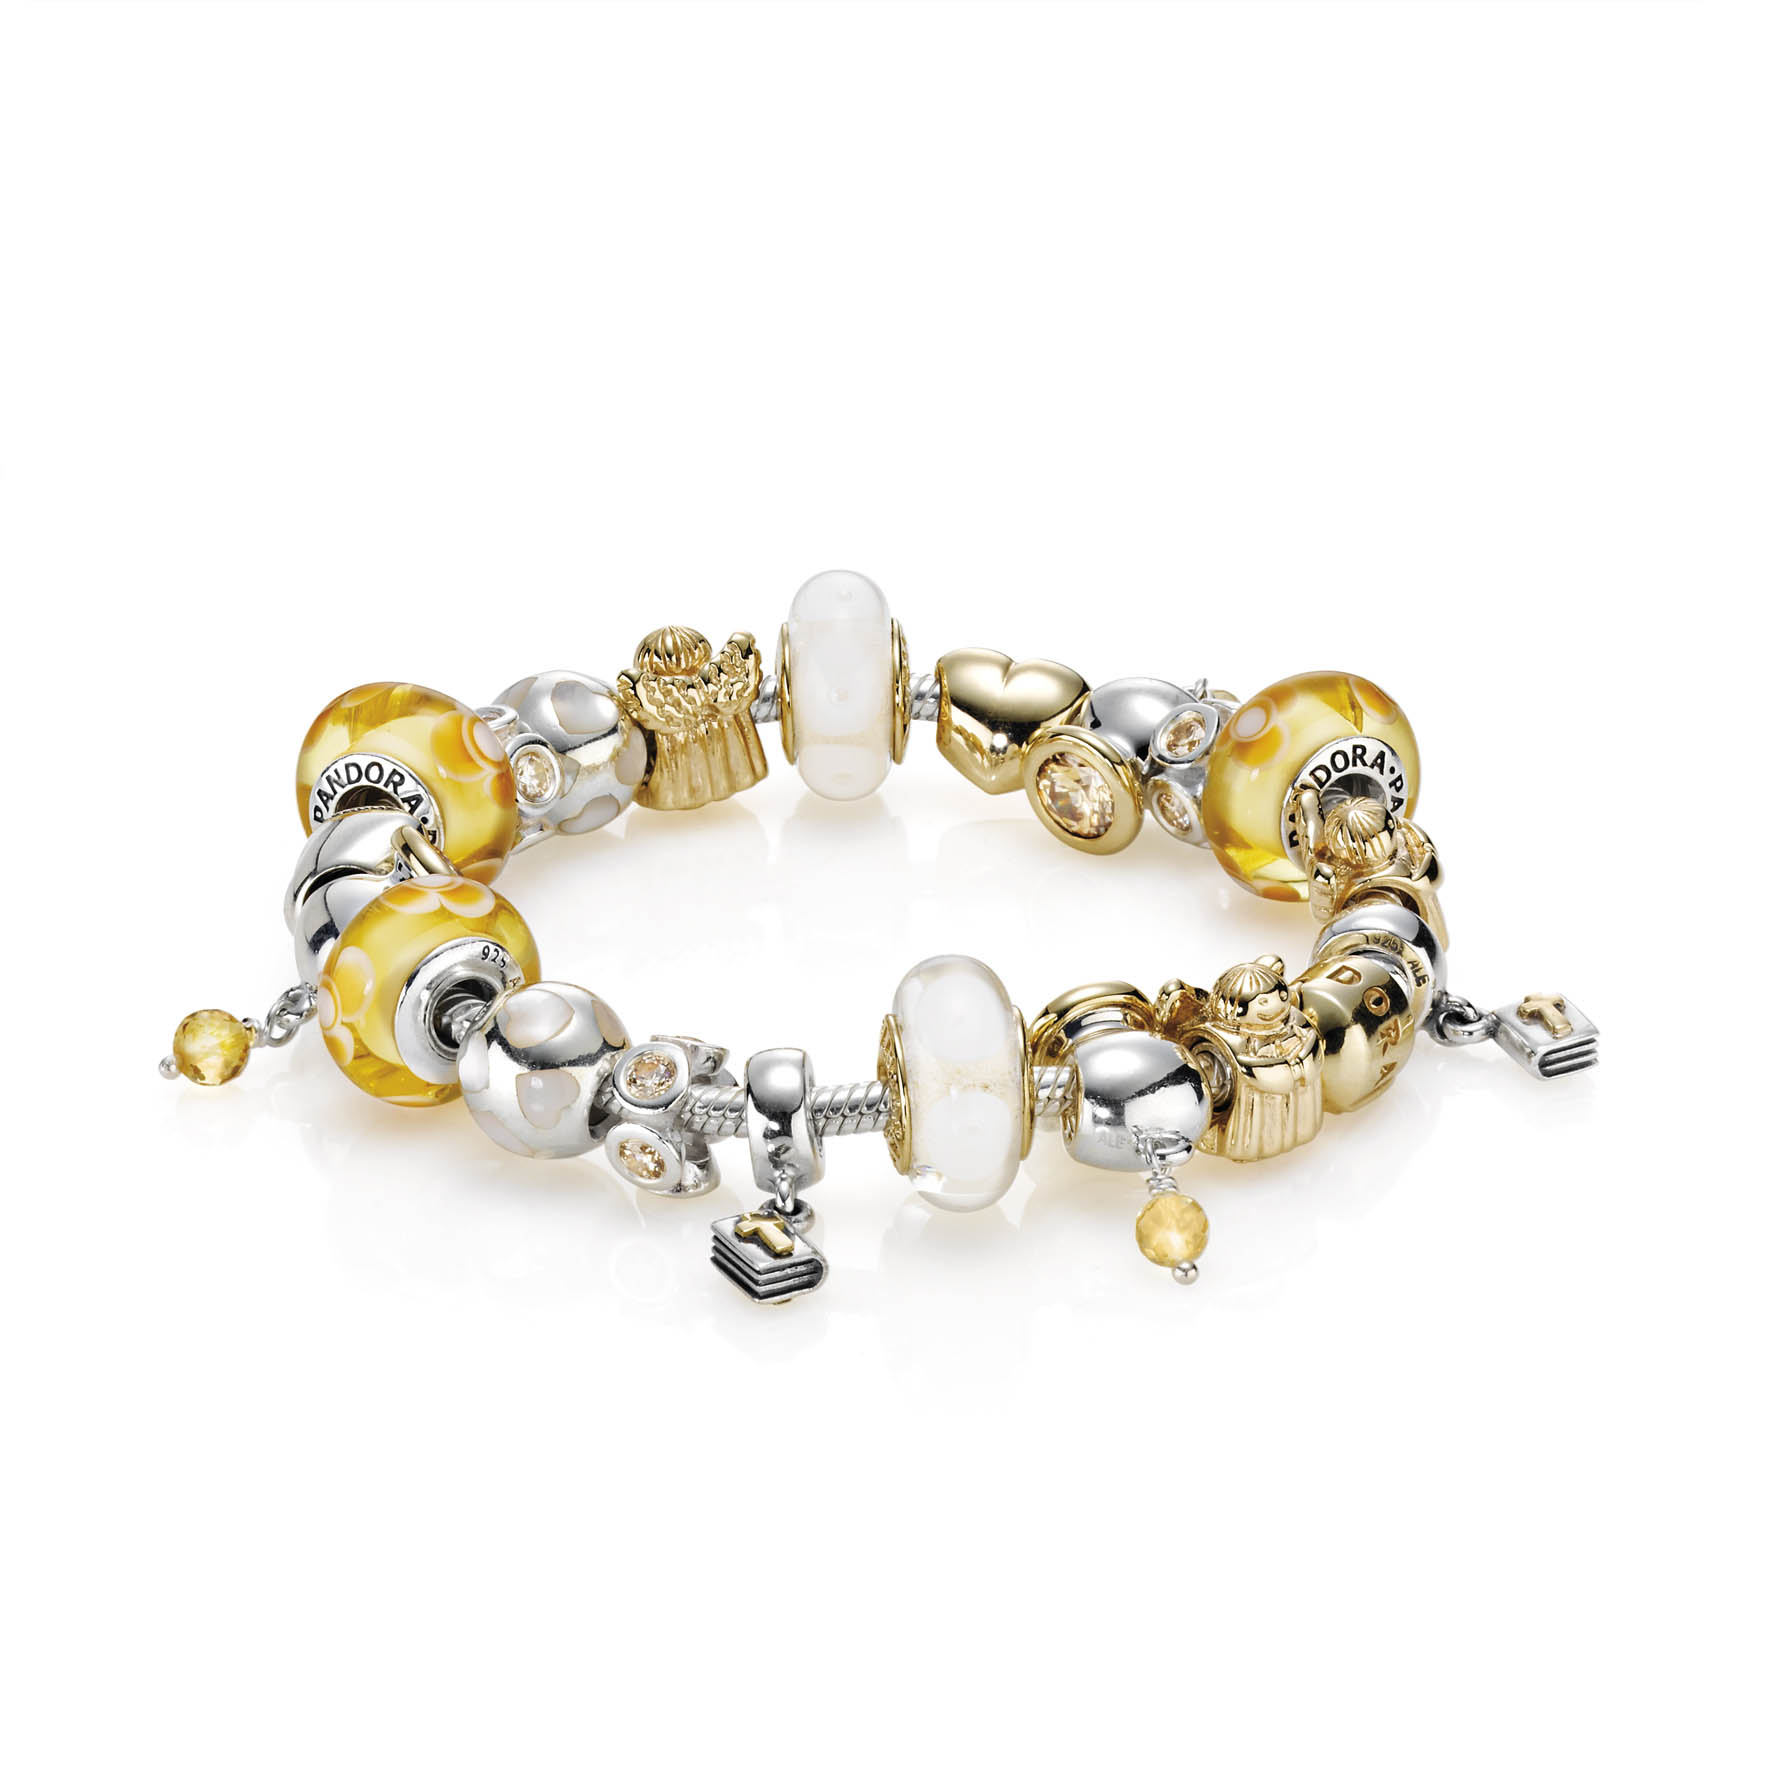 your rose pandora spicing sterling with a look perfect pin silver up stunners two tone for wintery adorn and charms sweater in bangle wrist bangles